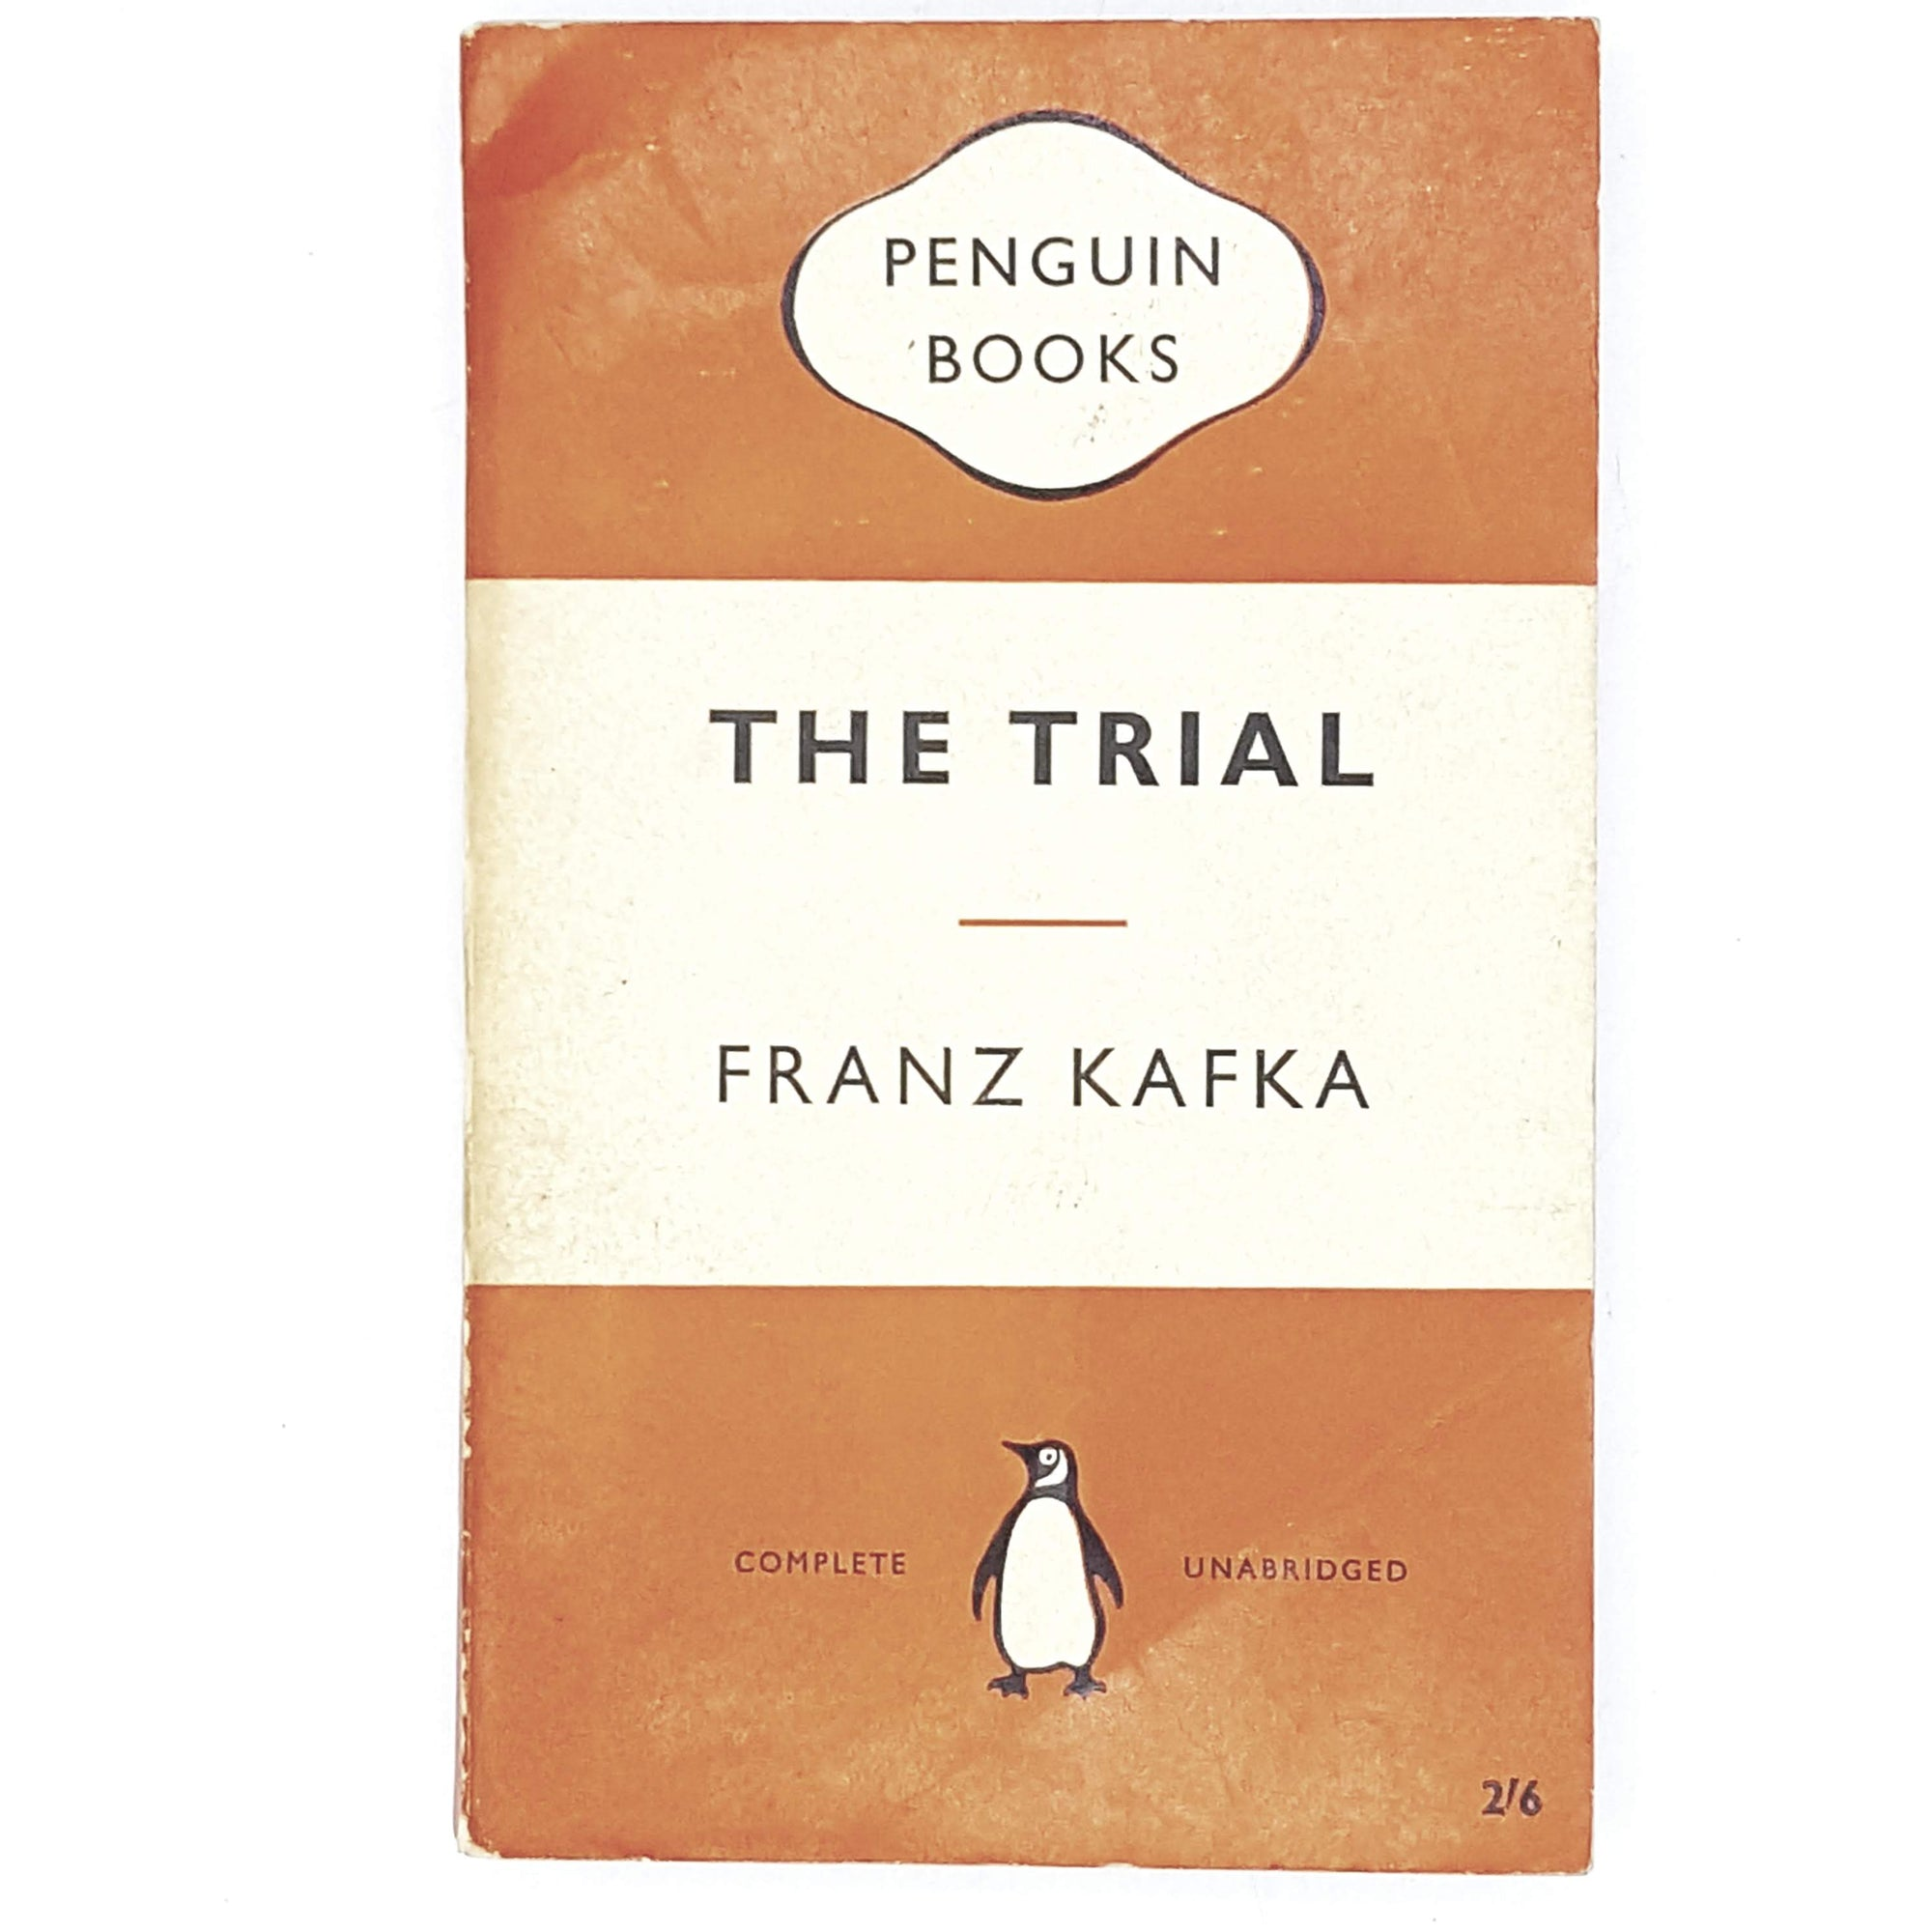 Franz Kafka's The Trial 1955 - 1960